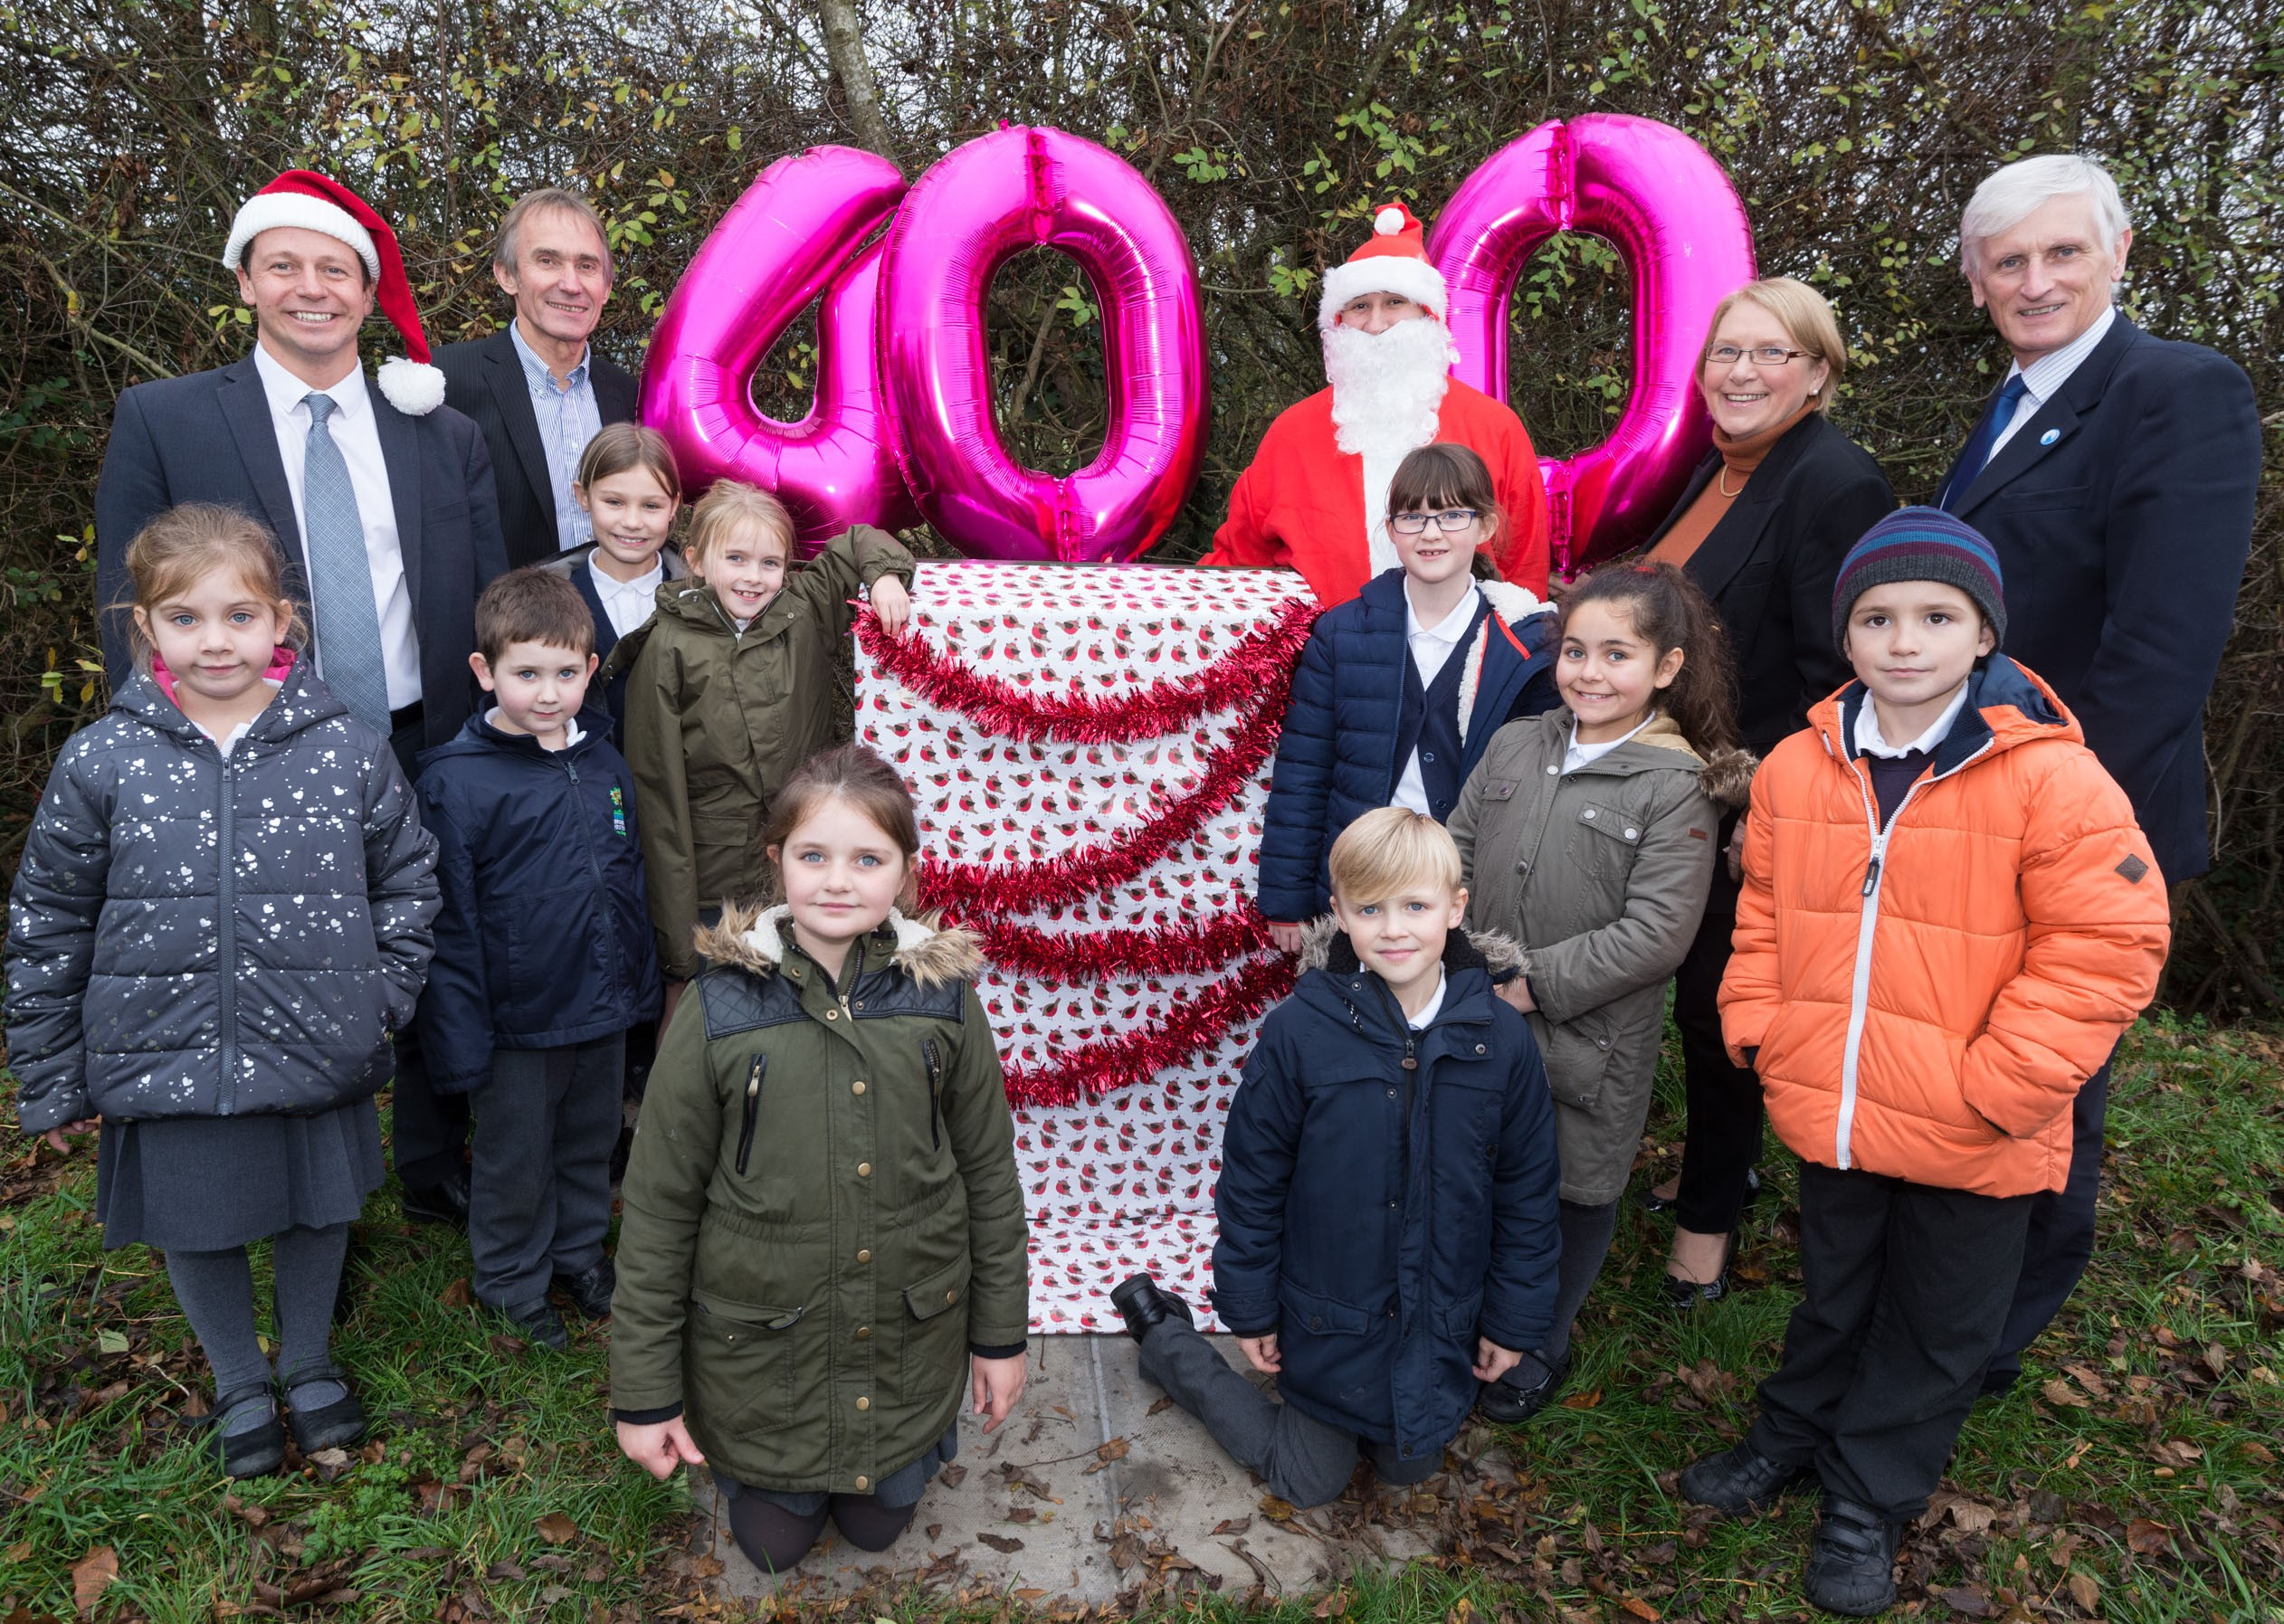 Photo, from left: Nigel Huddleston MP, Ian Binks (BT Group), Father Christmas, Cllr Liz Eyre and Cllr Ken Pollock with pupils from Broadway First School